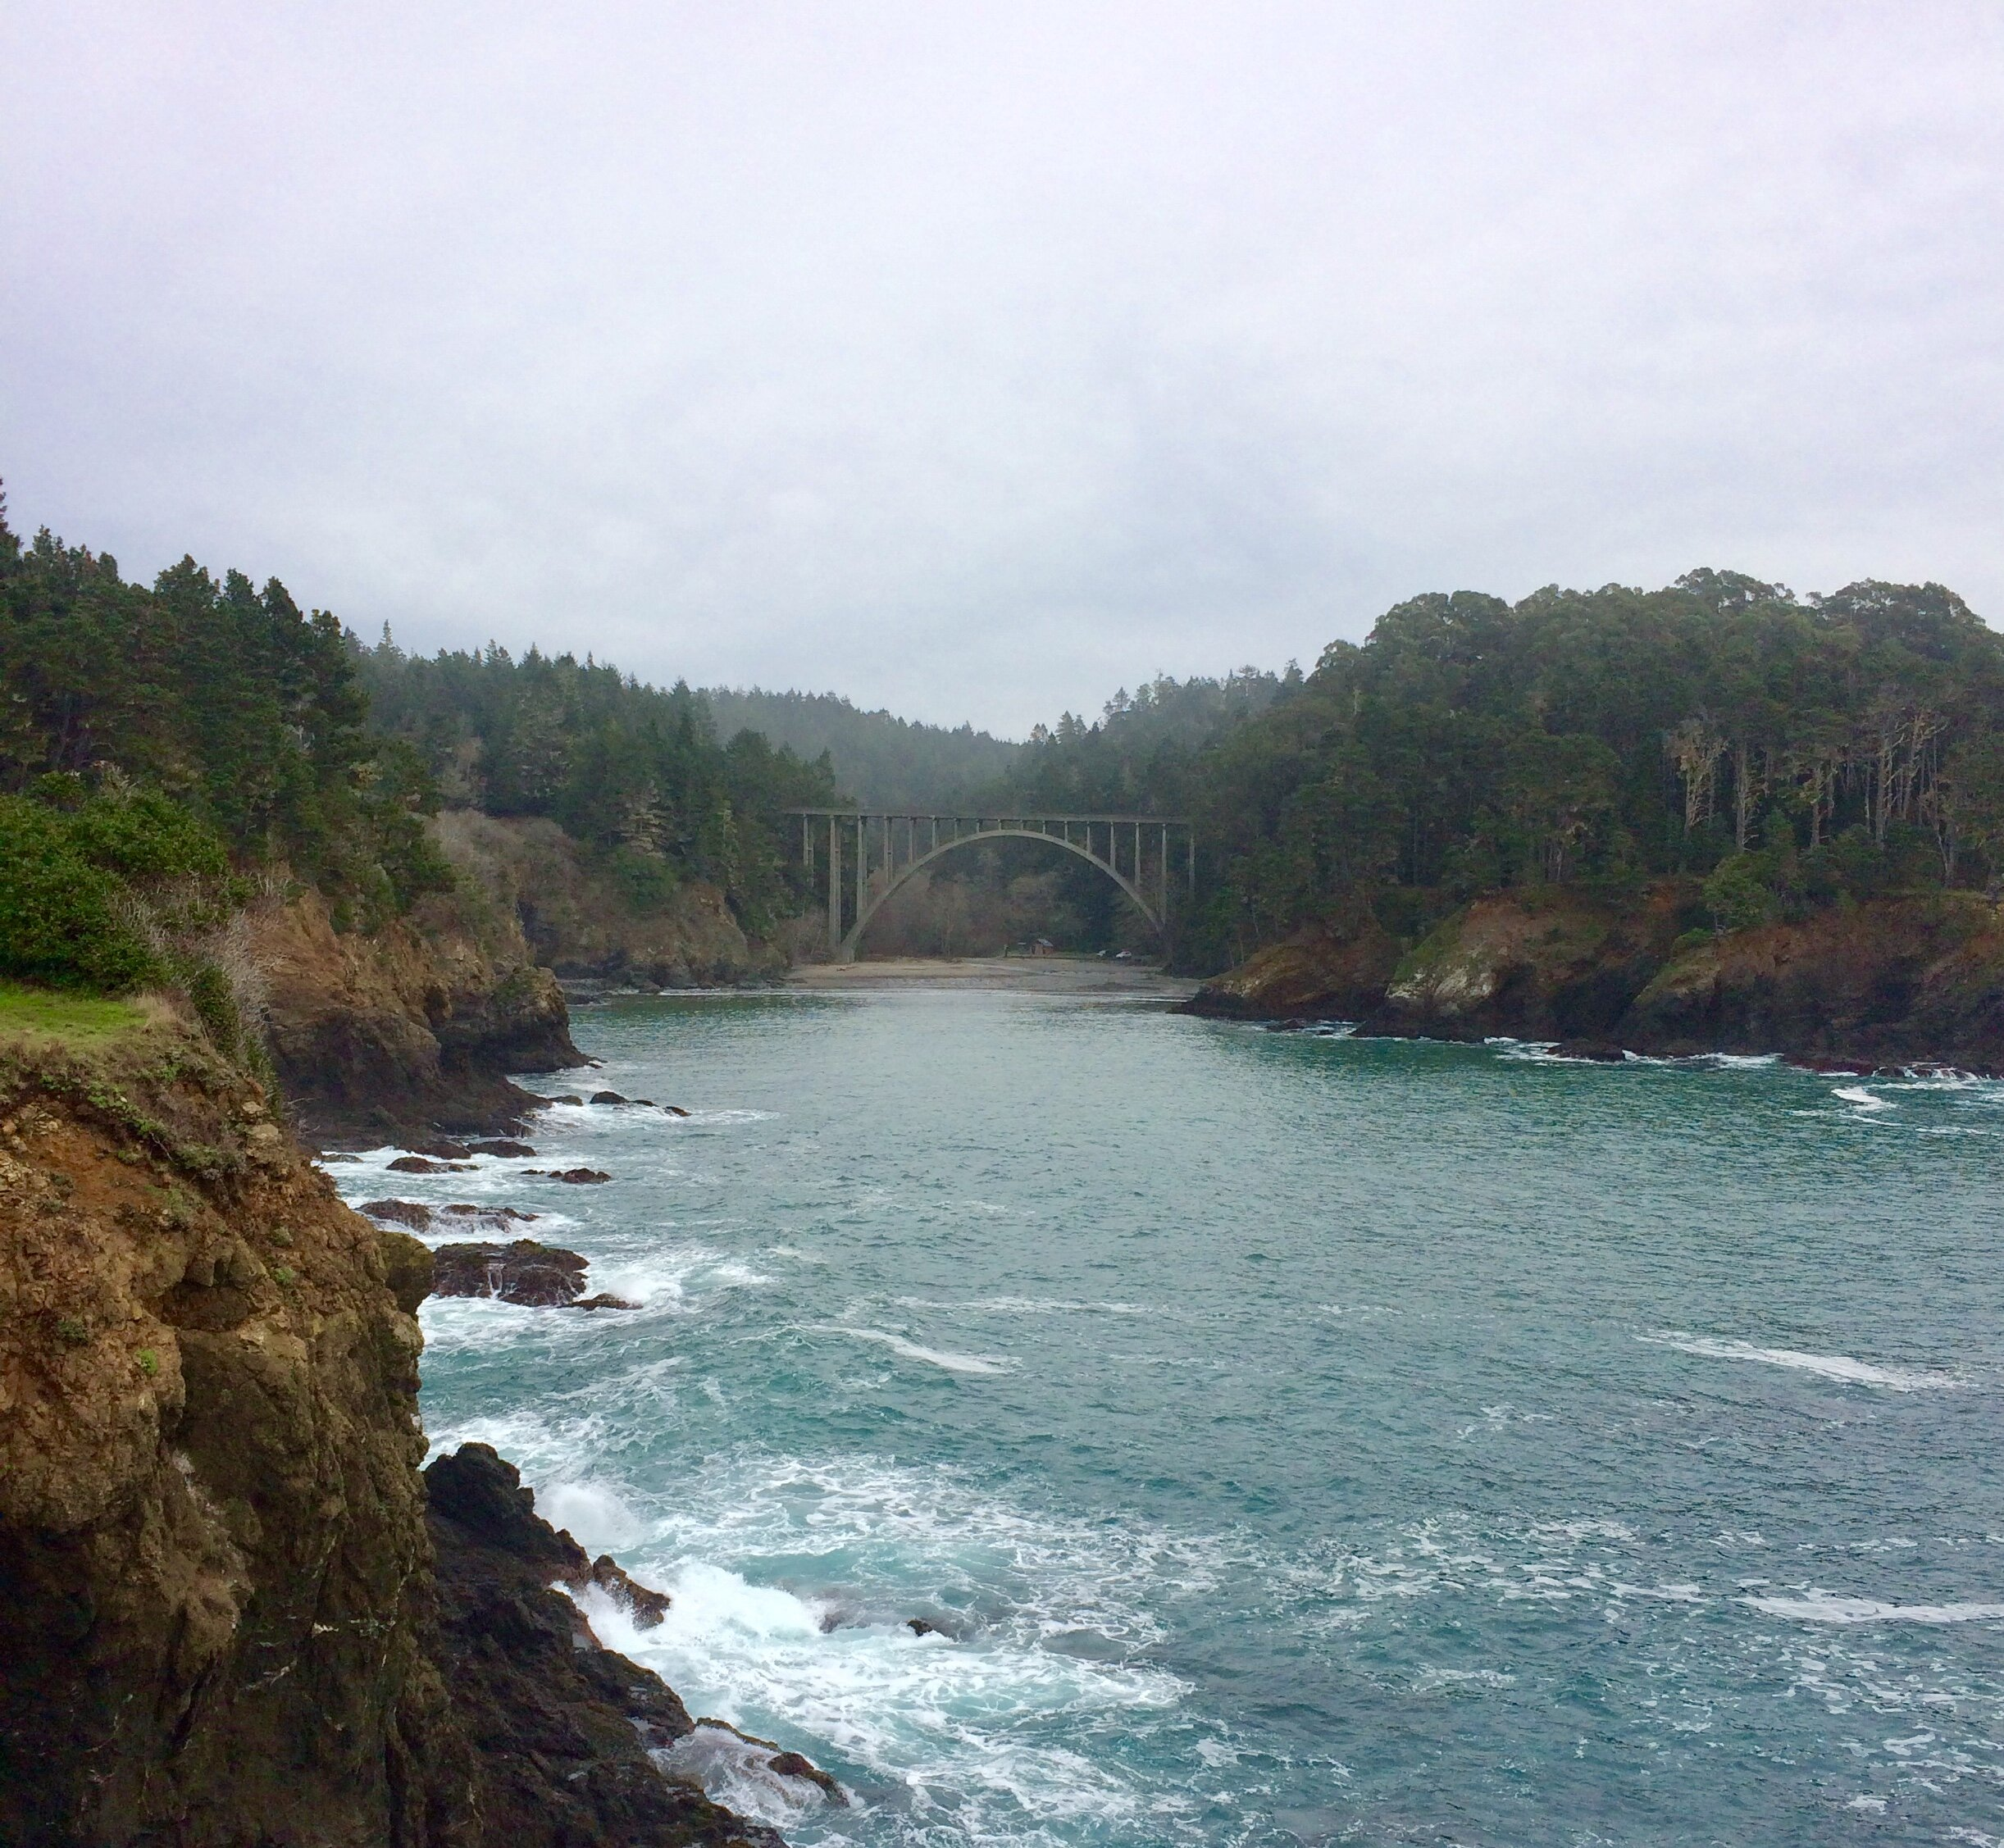 The view from the park's headlands back toward the beach and the charming bridge.